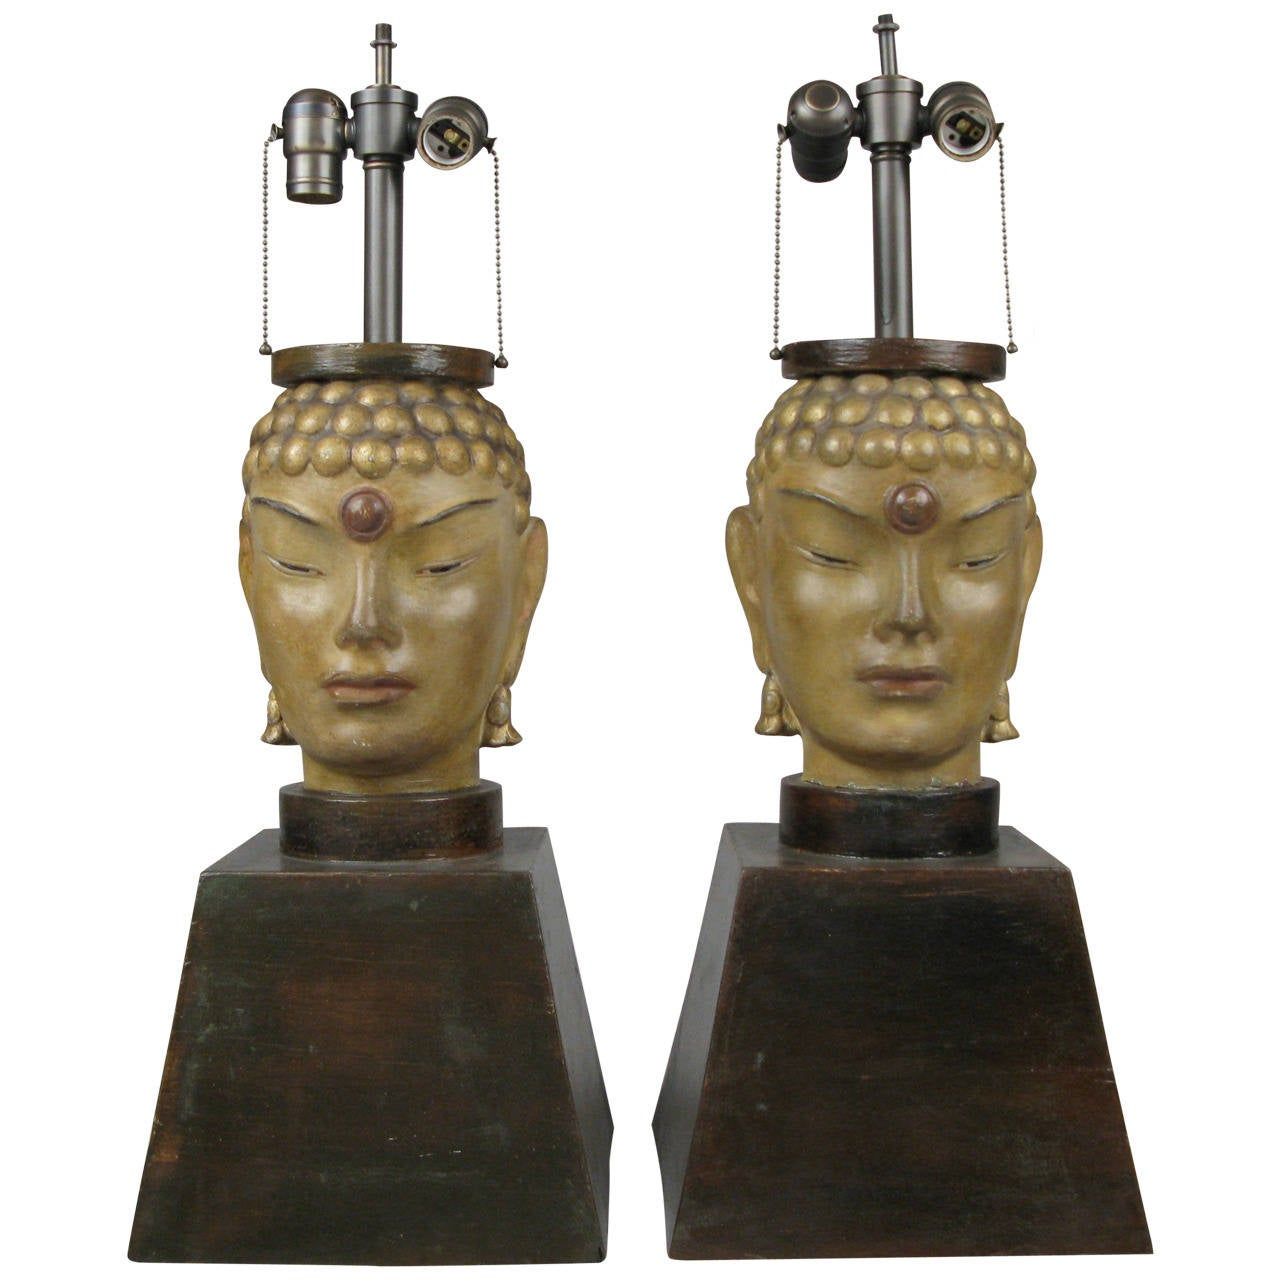 Pair of 1940s Buddha Lamps Attributed to James Mont